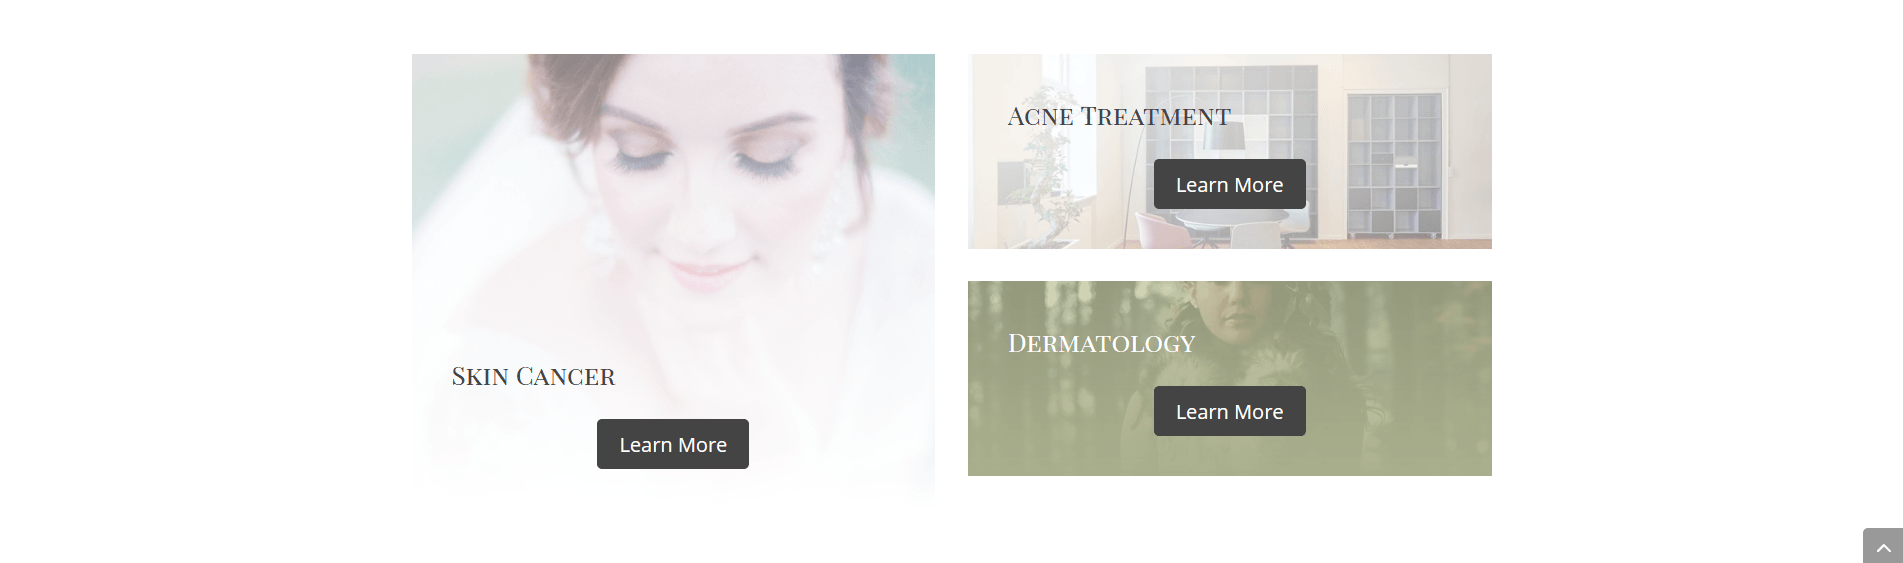 Ash Dermatology Merritt Island Wordpress Website Services Sections